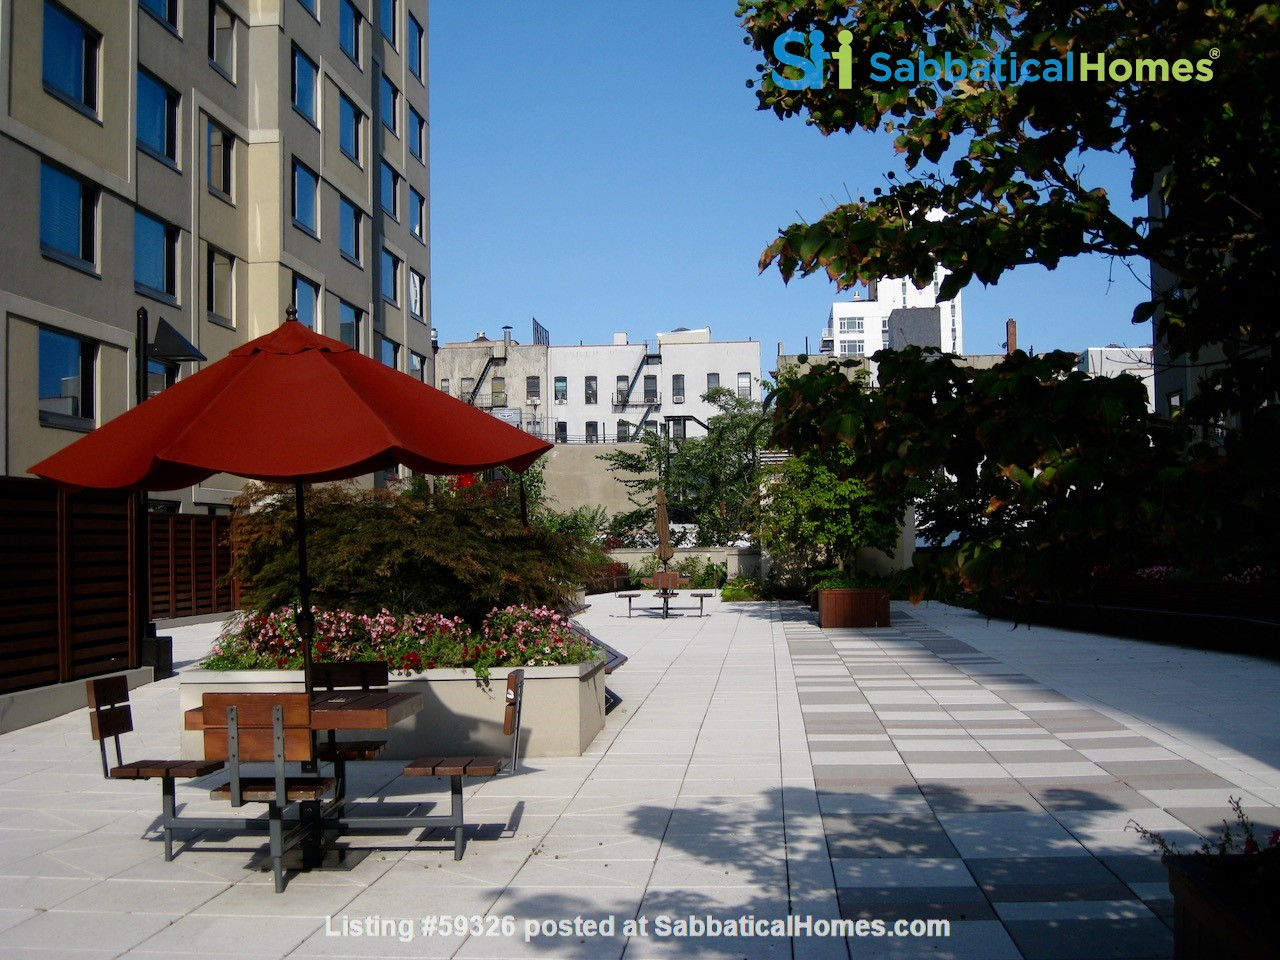 Zen 2BD/2BA Condo in Luxury Building w/Gym, 2 Rooftop Terraces, Harlem NYC Home Rental in New York, New York, United States 1